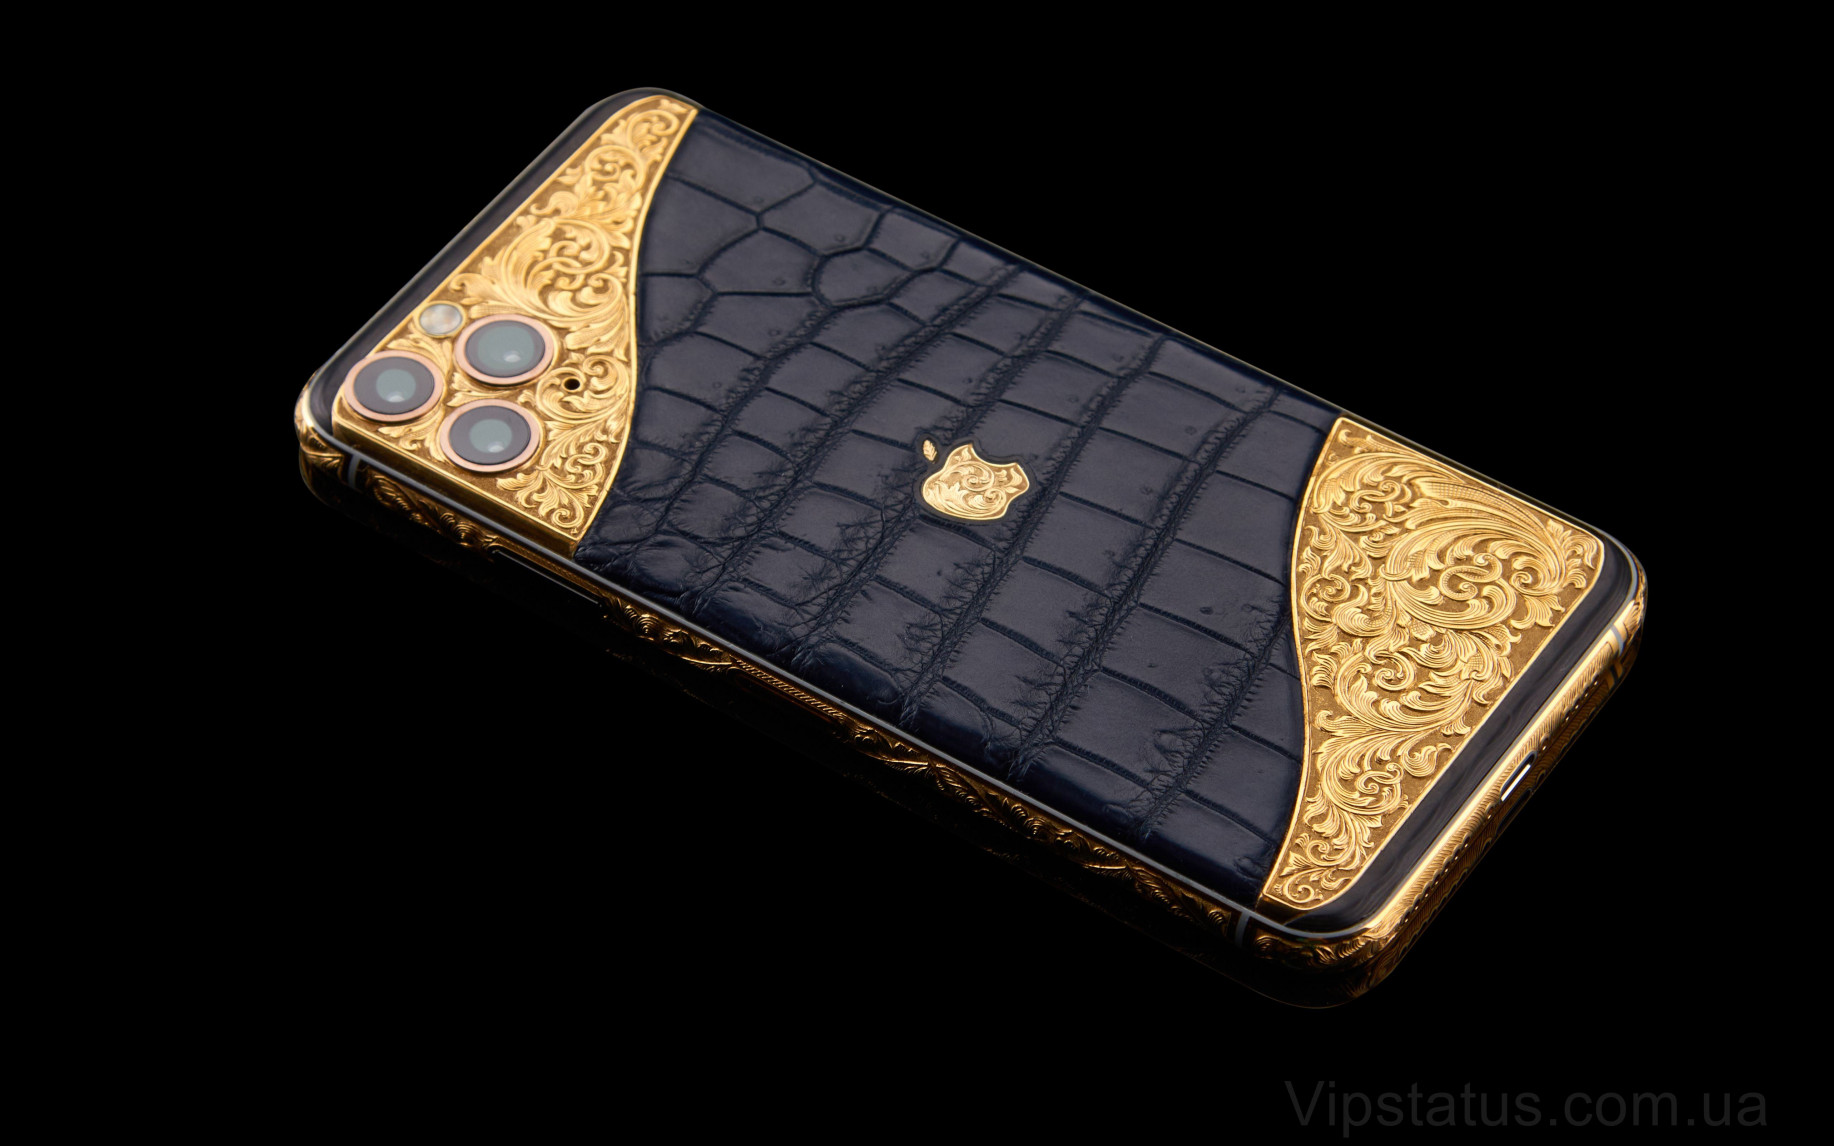 Элитный Gold Aristocrate IPHONE 11 PRO MAX 512 GB Gold Aristocrate IPHONE 11 PRO MAX 512 GB изображение 3